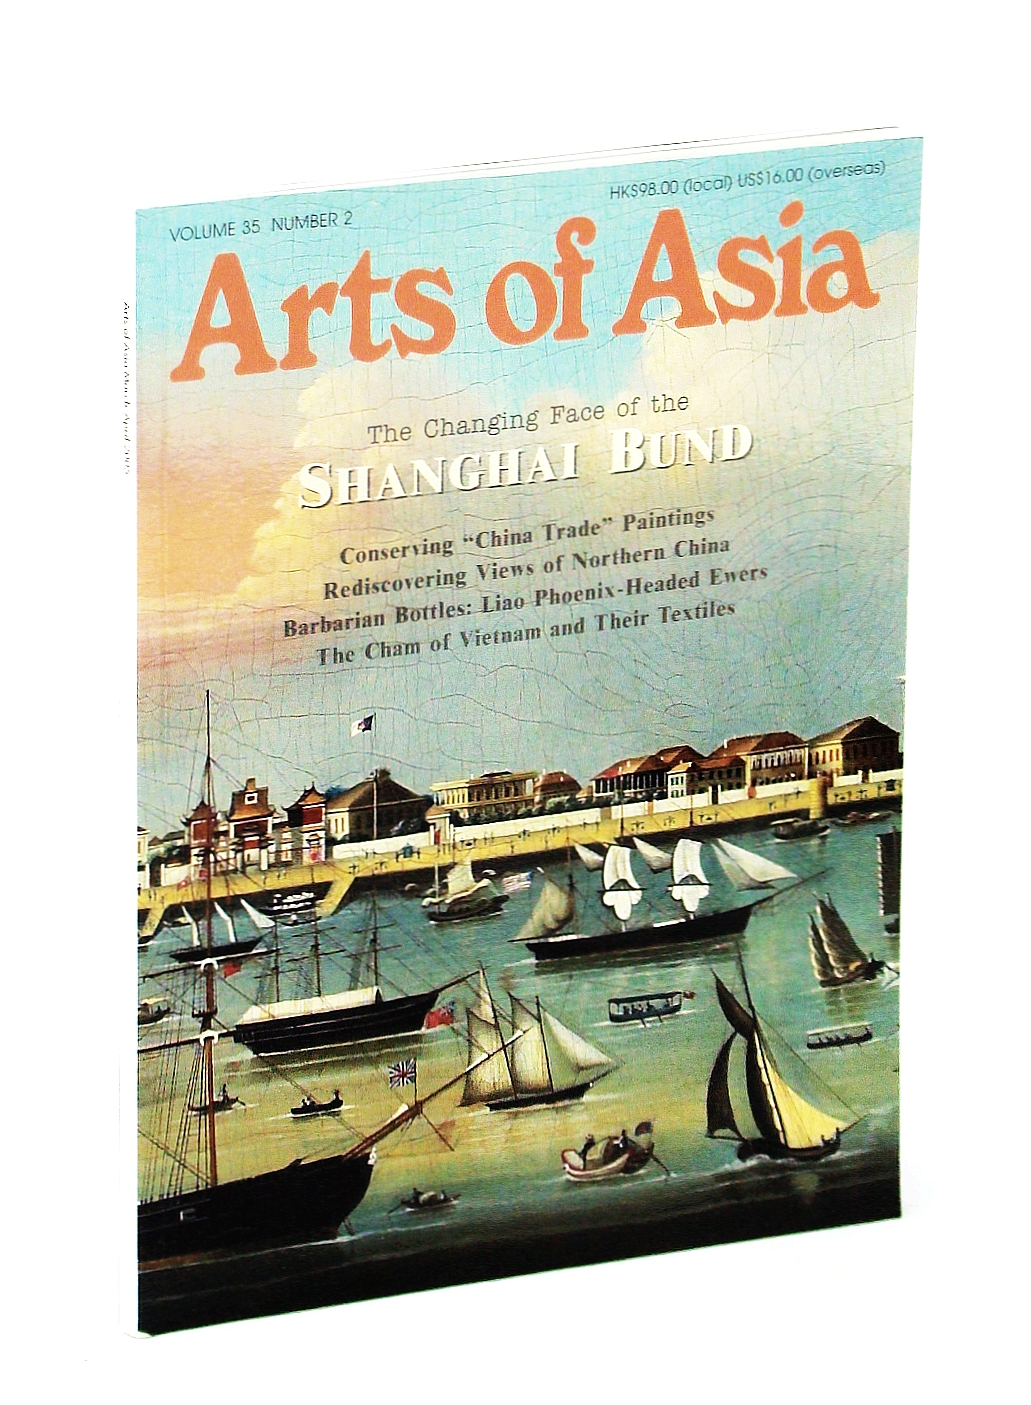 Image for Arts of Asia Magazine, Volume 35, Number 2, March [Mar.] - April [Apr.] 2005: The Shanghai Bund